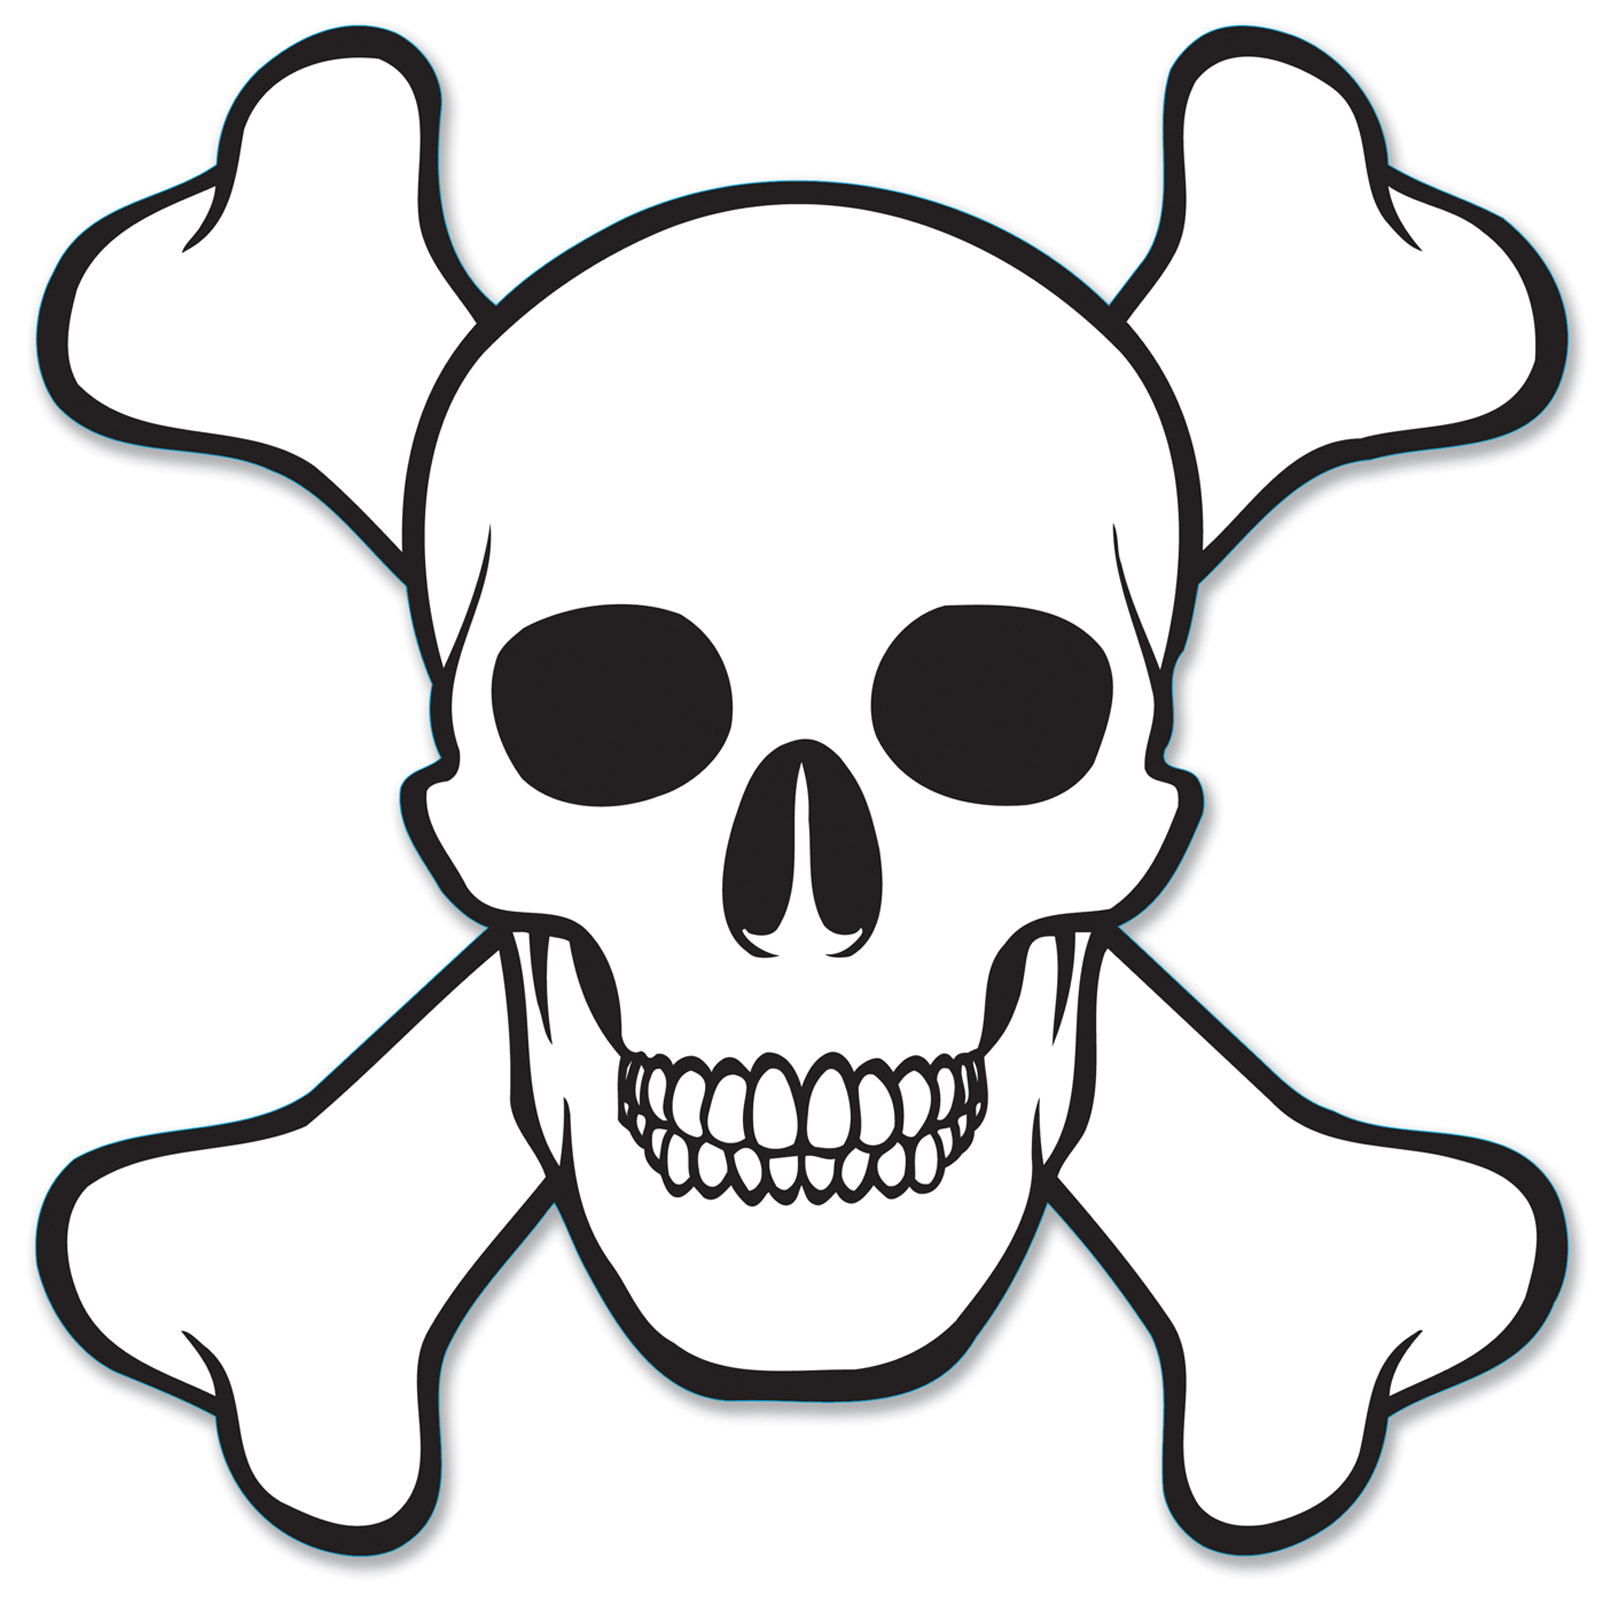 1600x1600 How To Draw A Skull And Crossbones